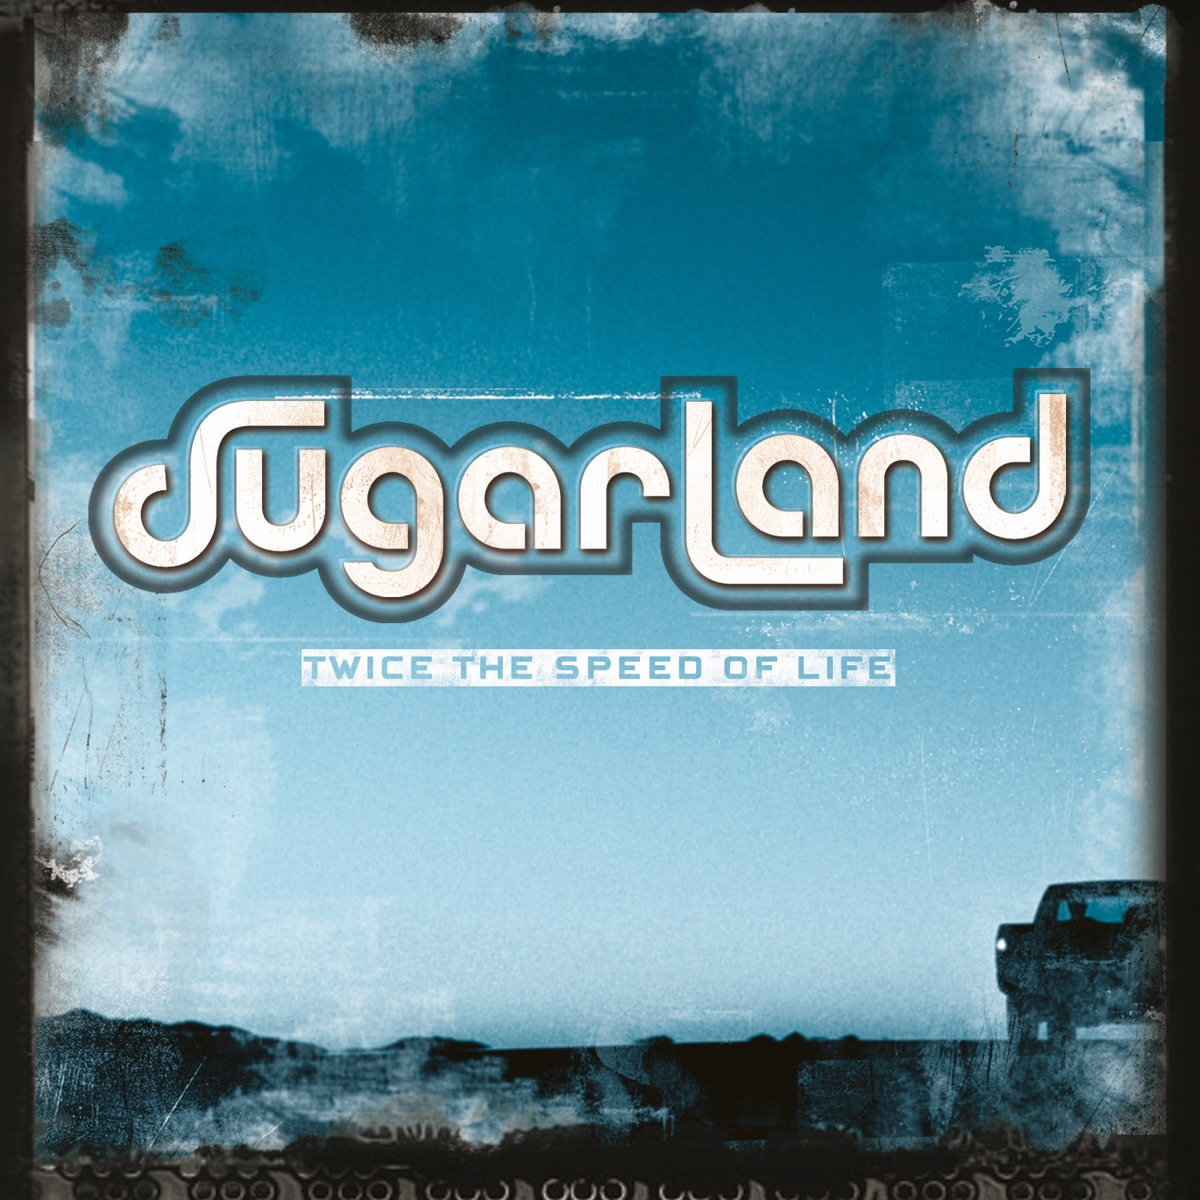 Twice the Speed of Life Sugarland CD cover